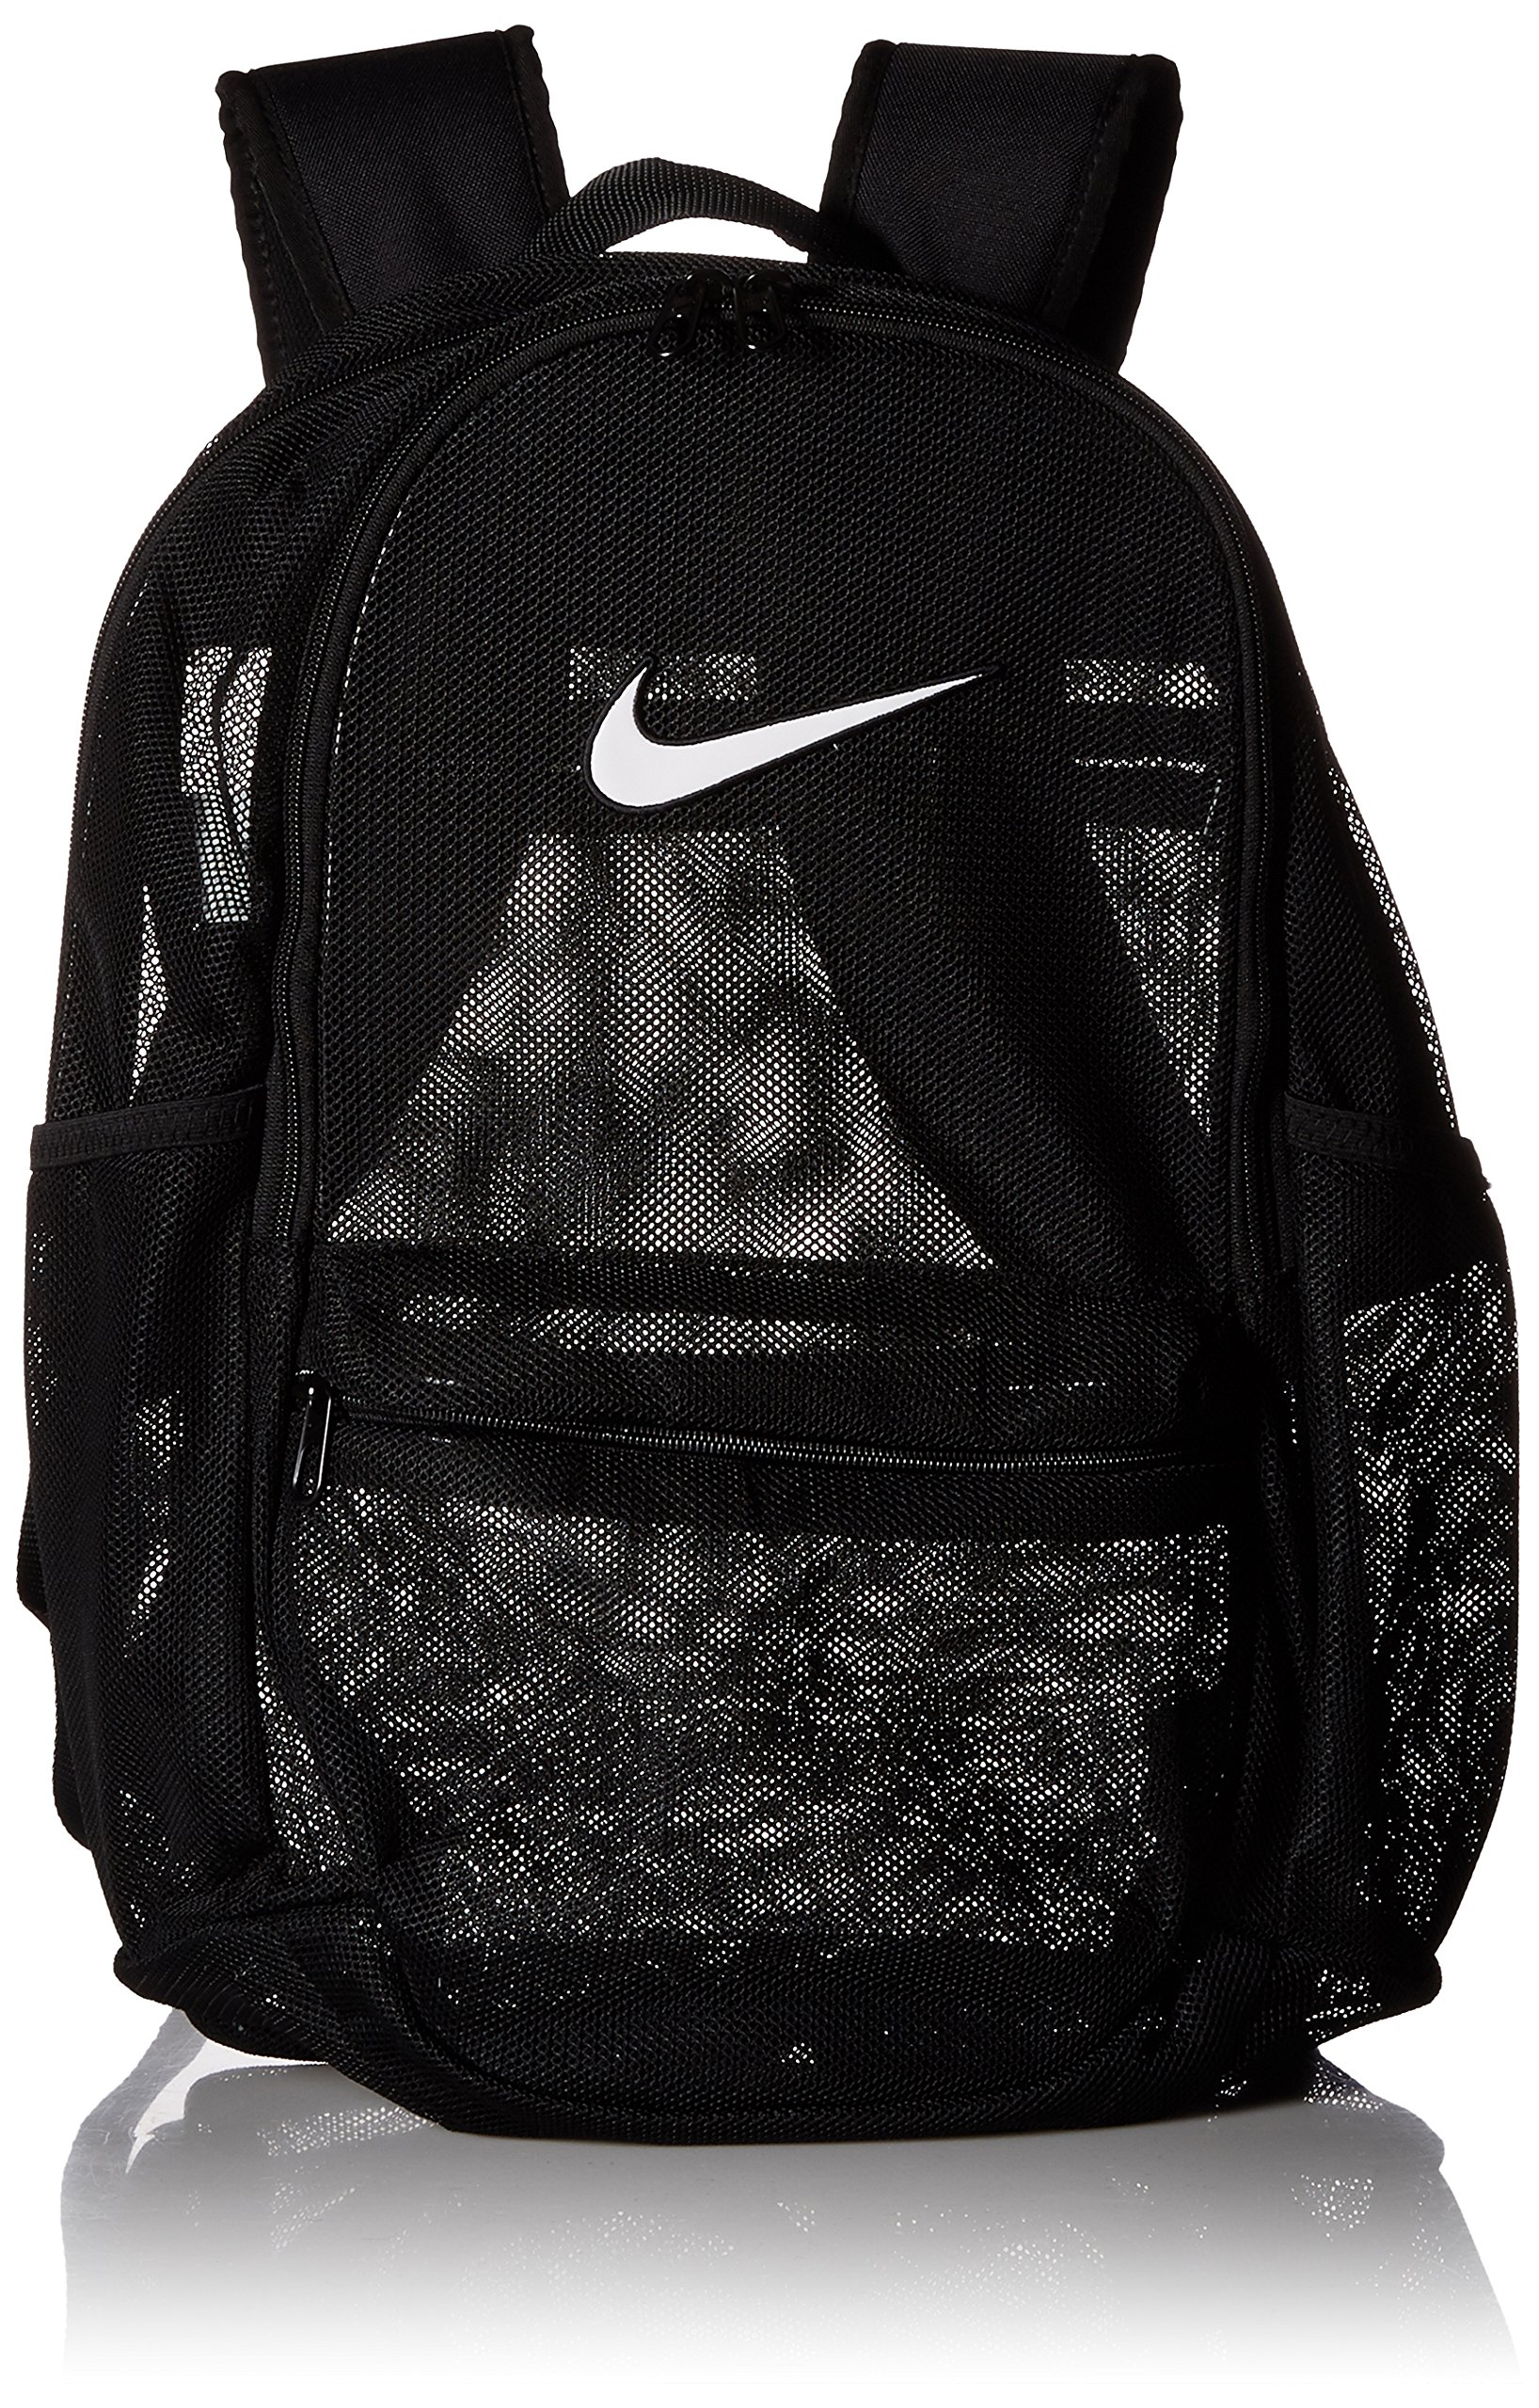 NIKE Brasilia Mesh Training Backpack, Black/Black/White